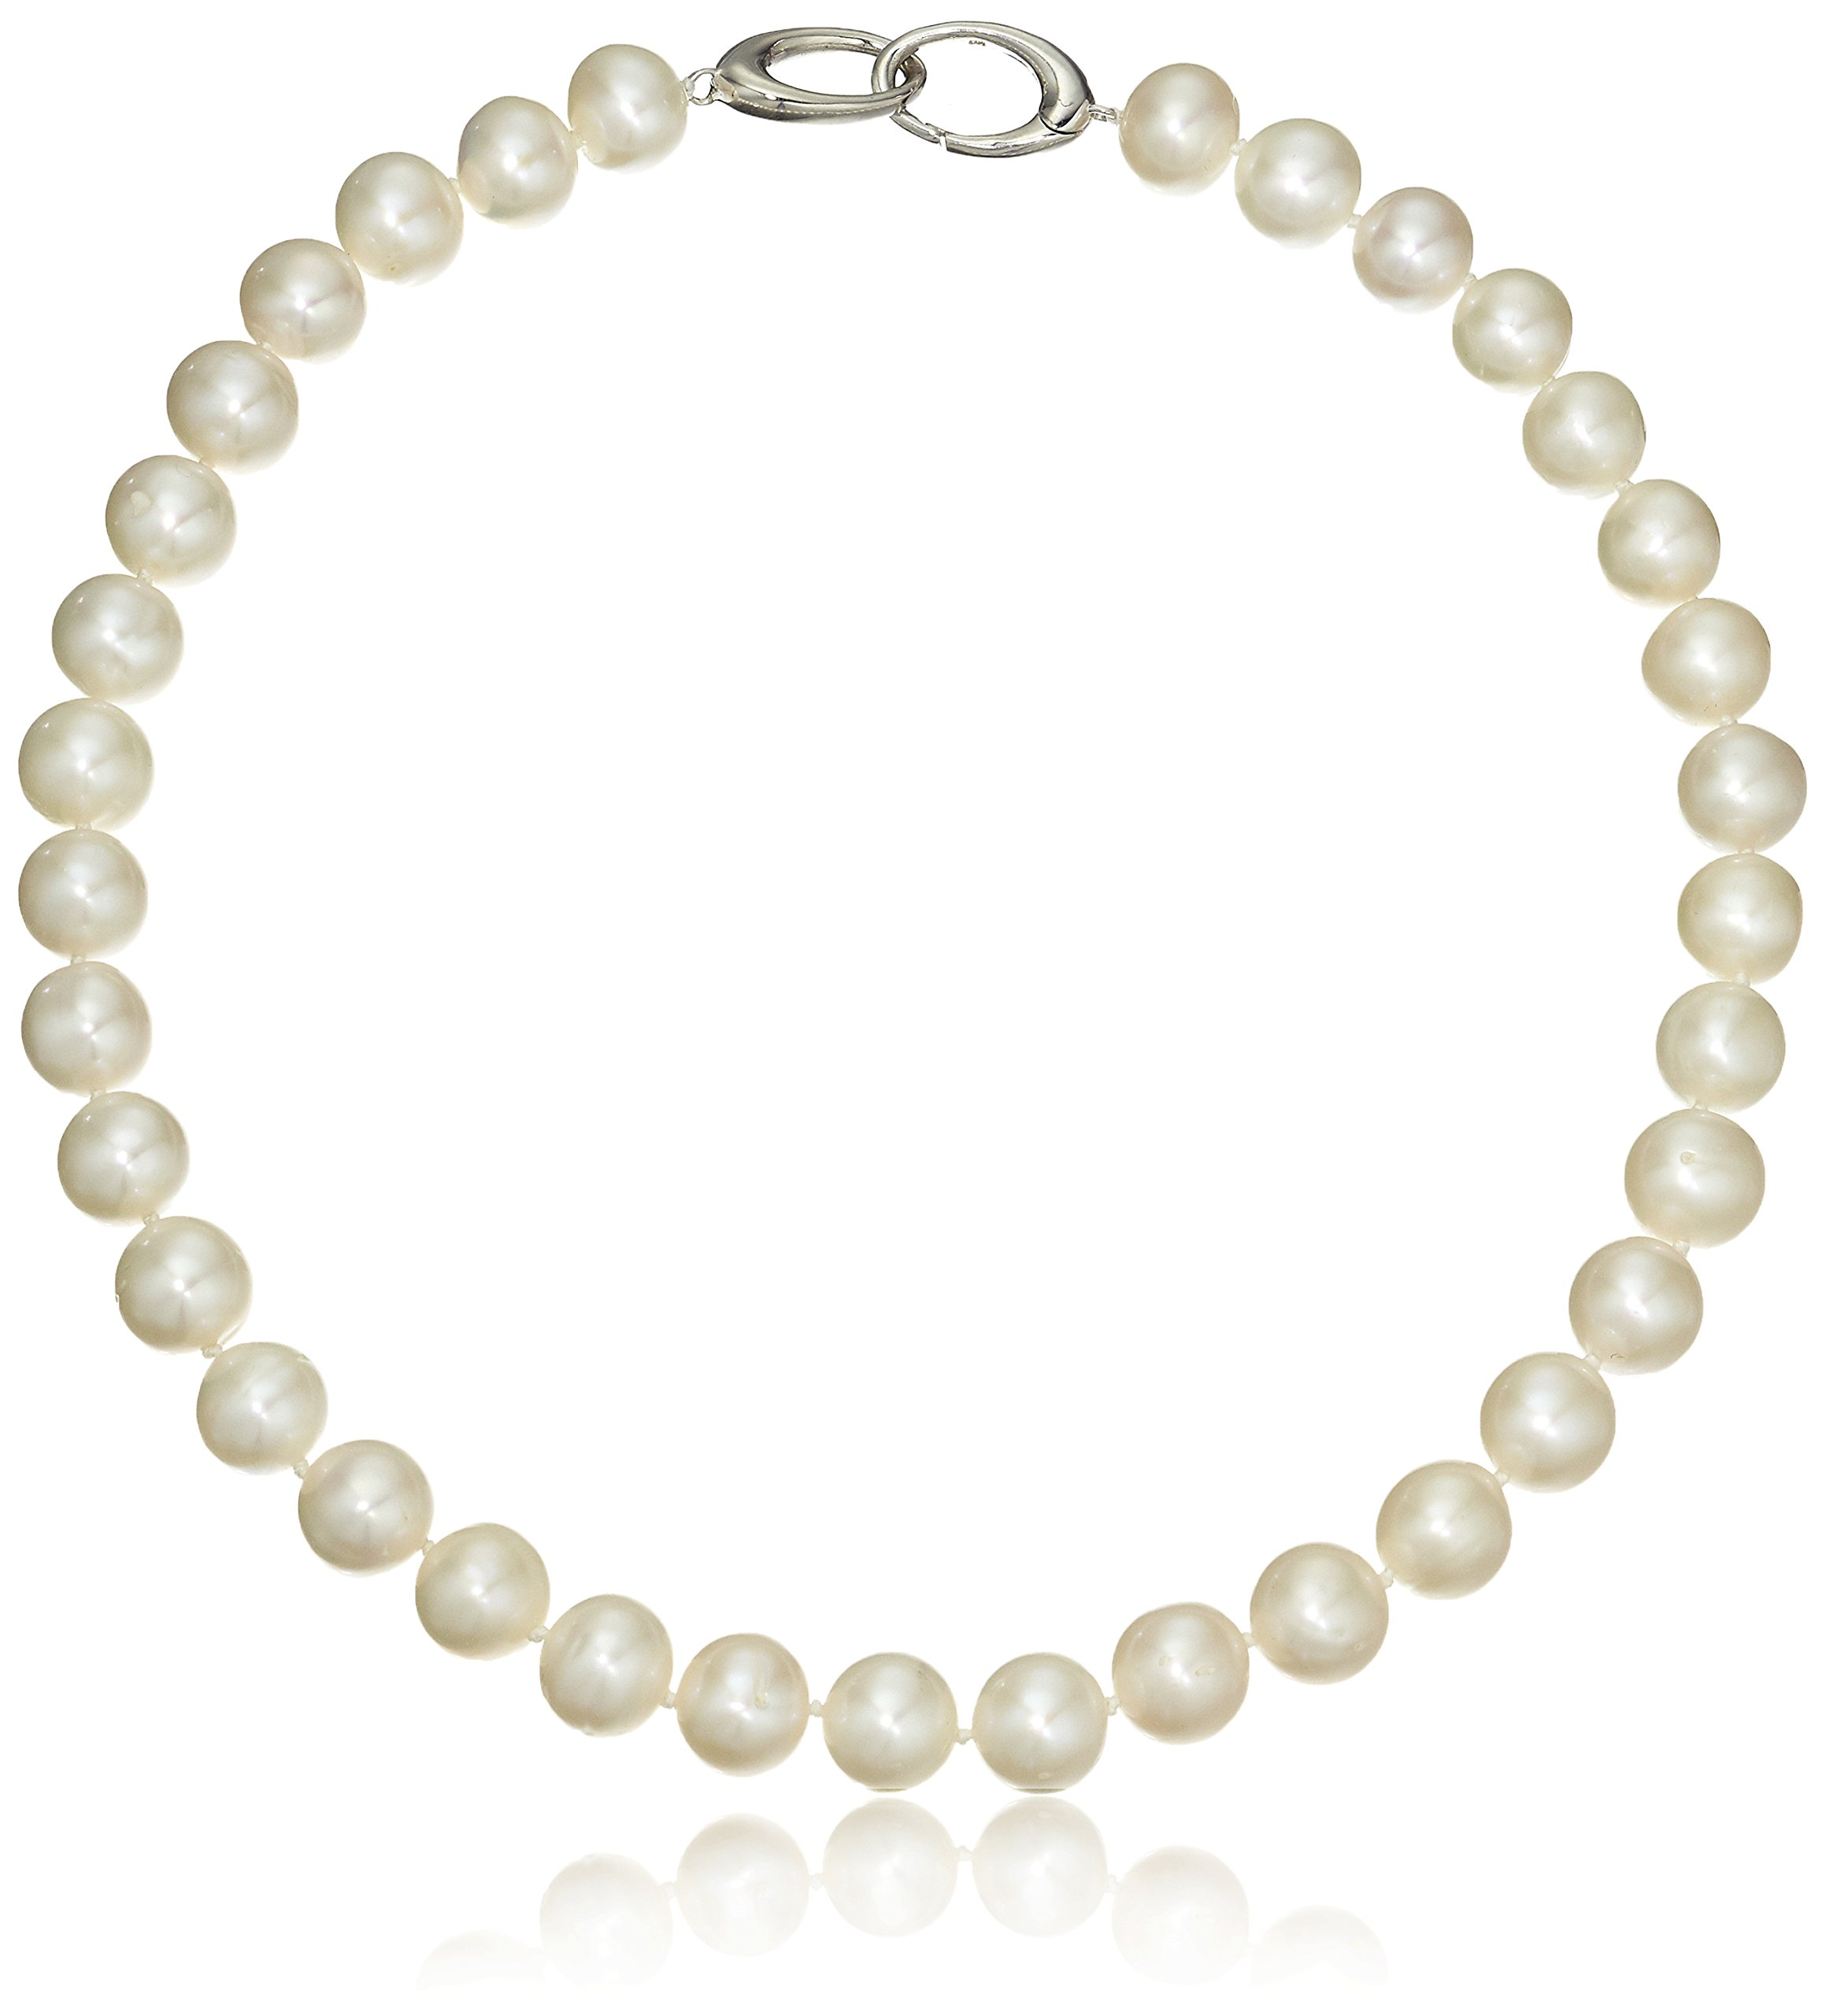 Sterling Silver 12-12.5mm Oval-Interlock Clasp White Freshwater Cultured Pearl Strand, 18''